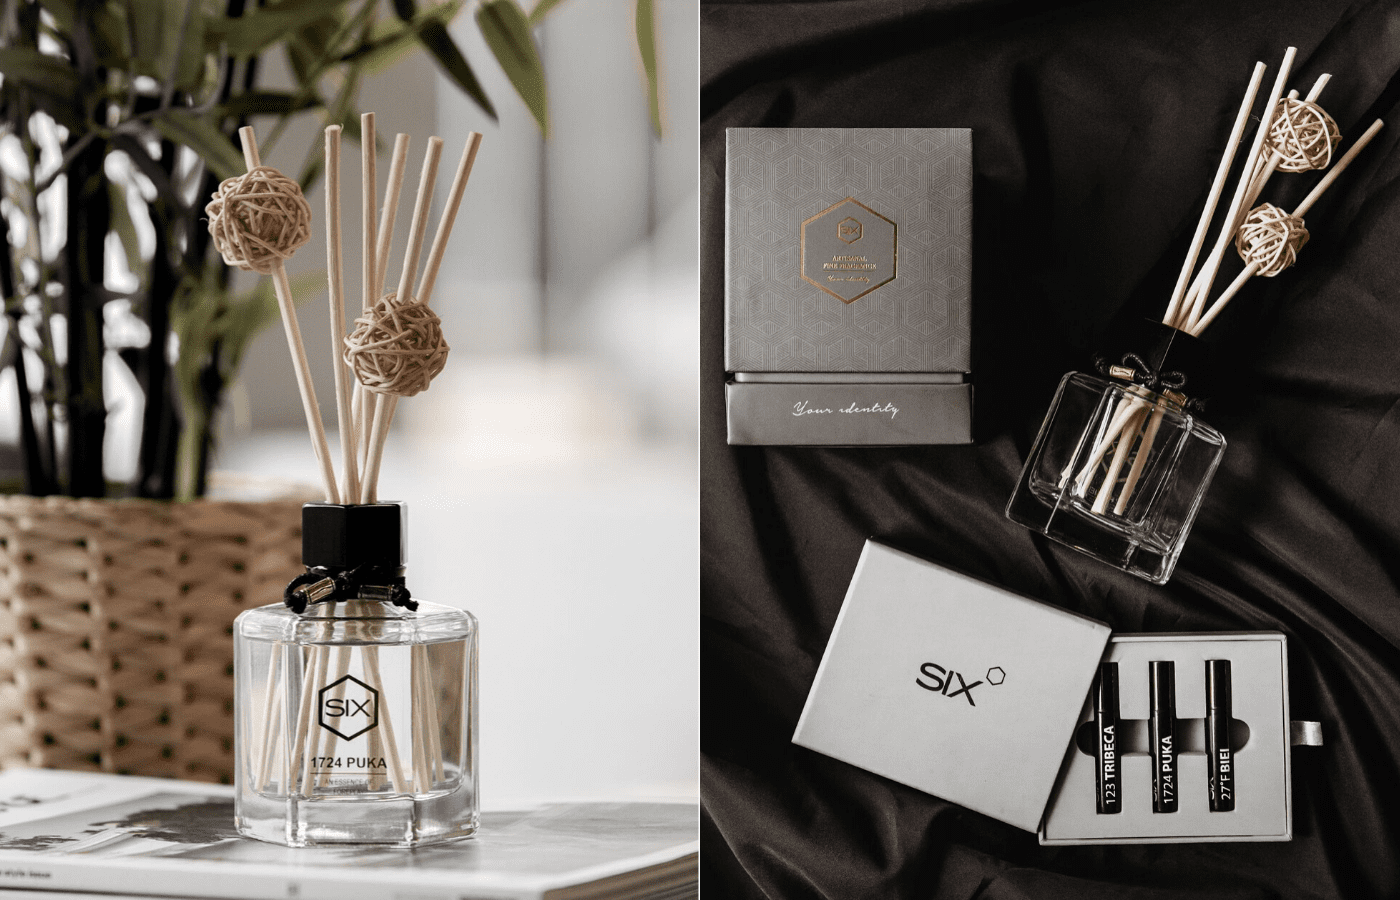 six | Local perfume brands | Honeycombers Singapore